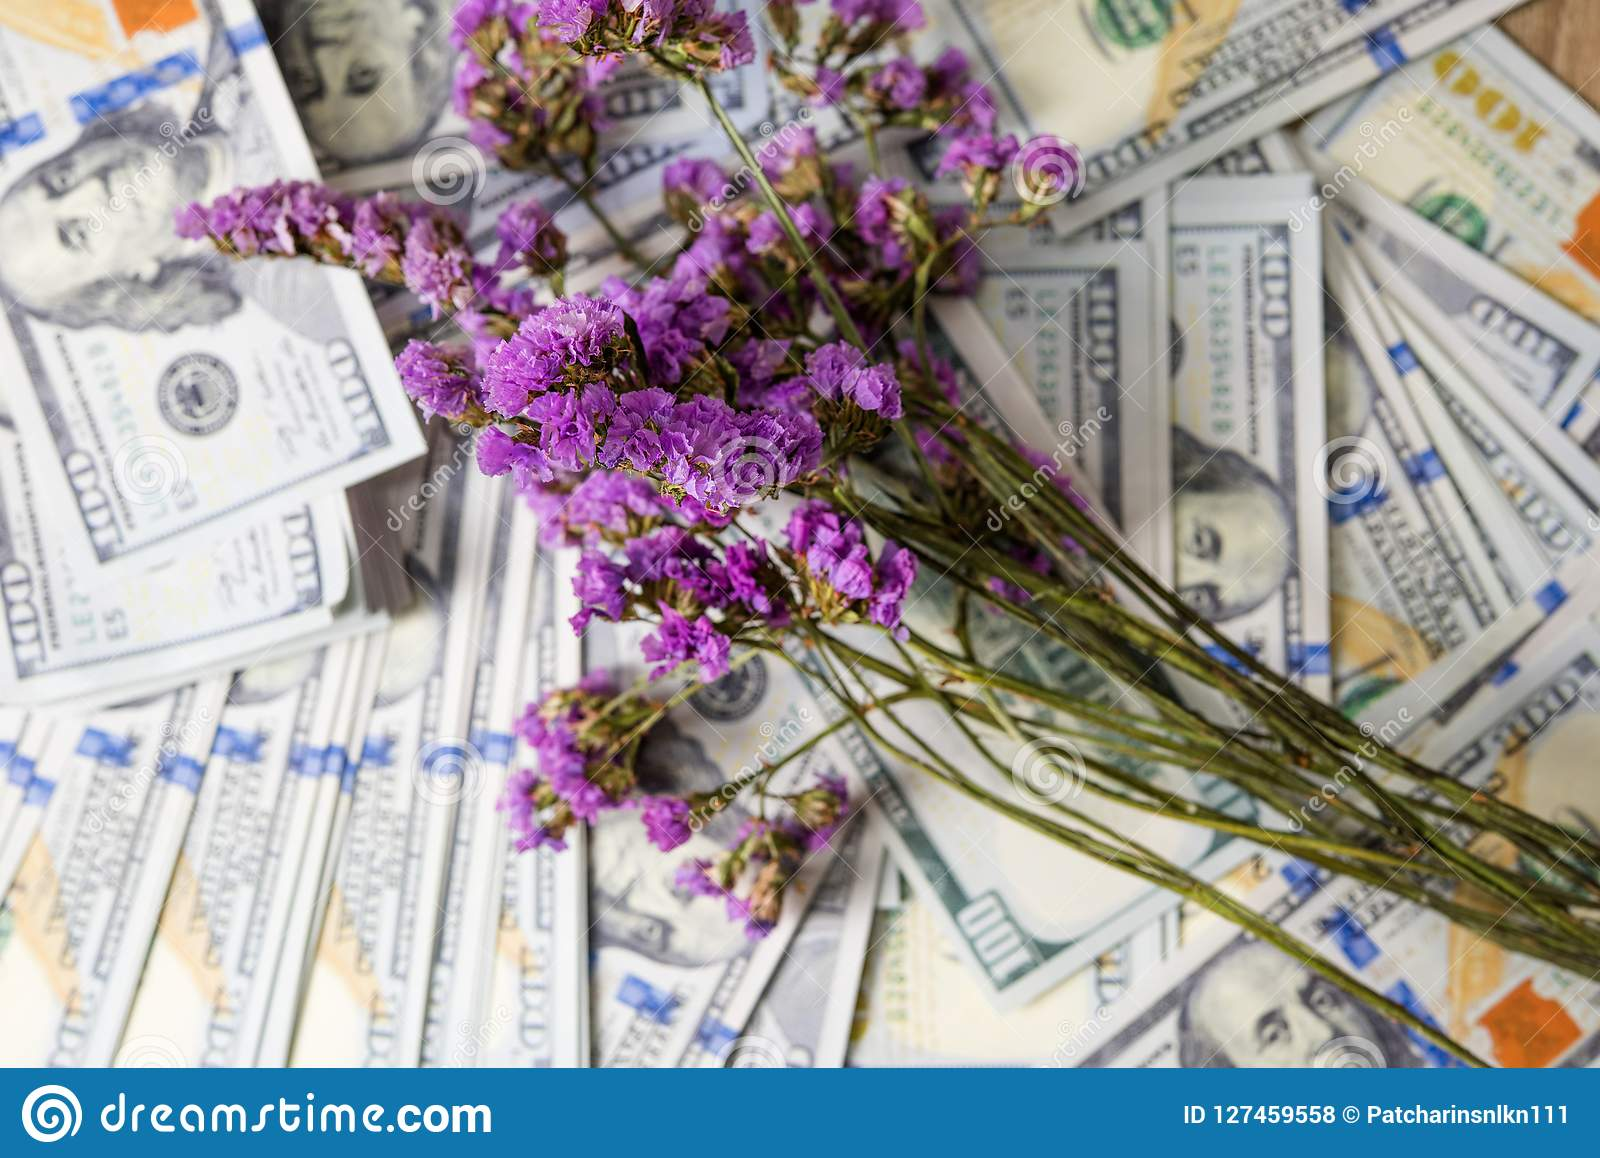 Business planner on financial income, dollar and business diagrams on financial reports with coins and purple flowers. Work and p